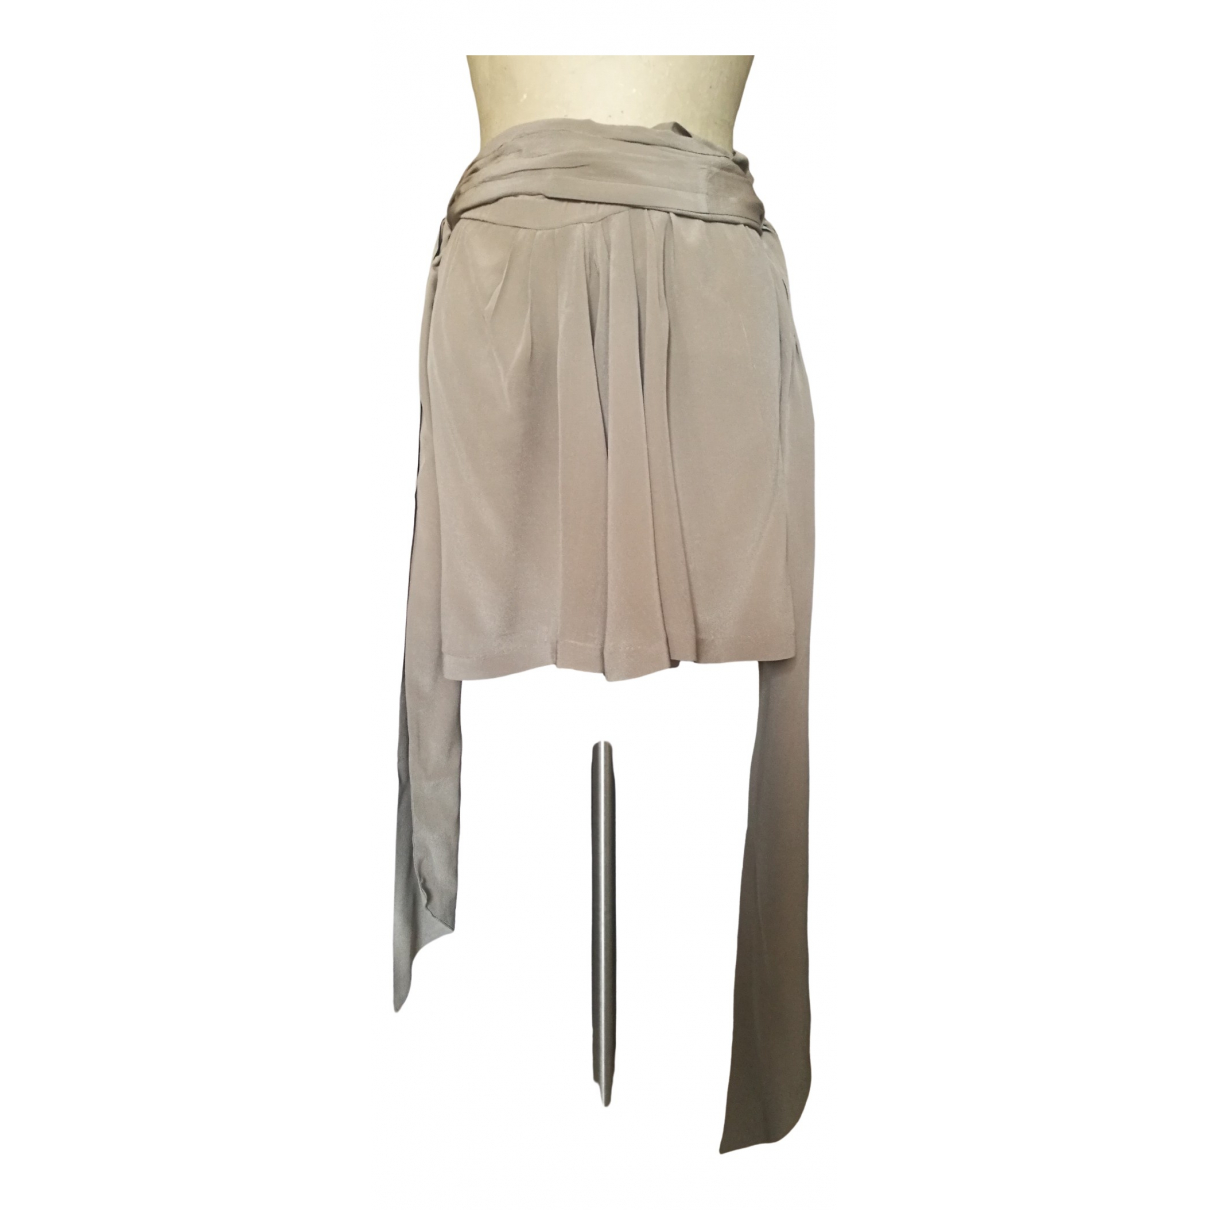 Isabel Marant \N Grey Silk skirt for Women 0 0-5